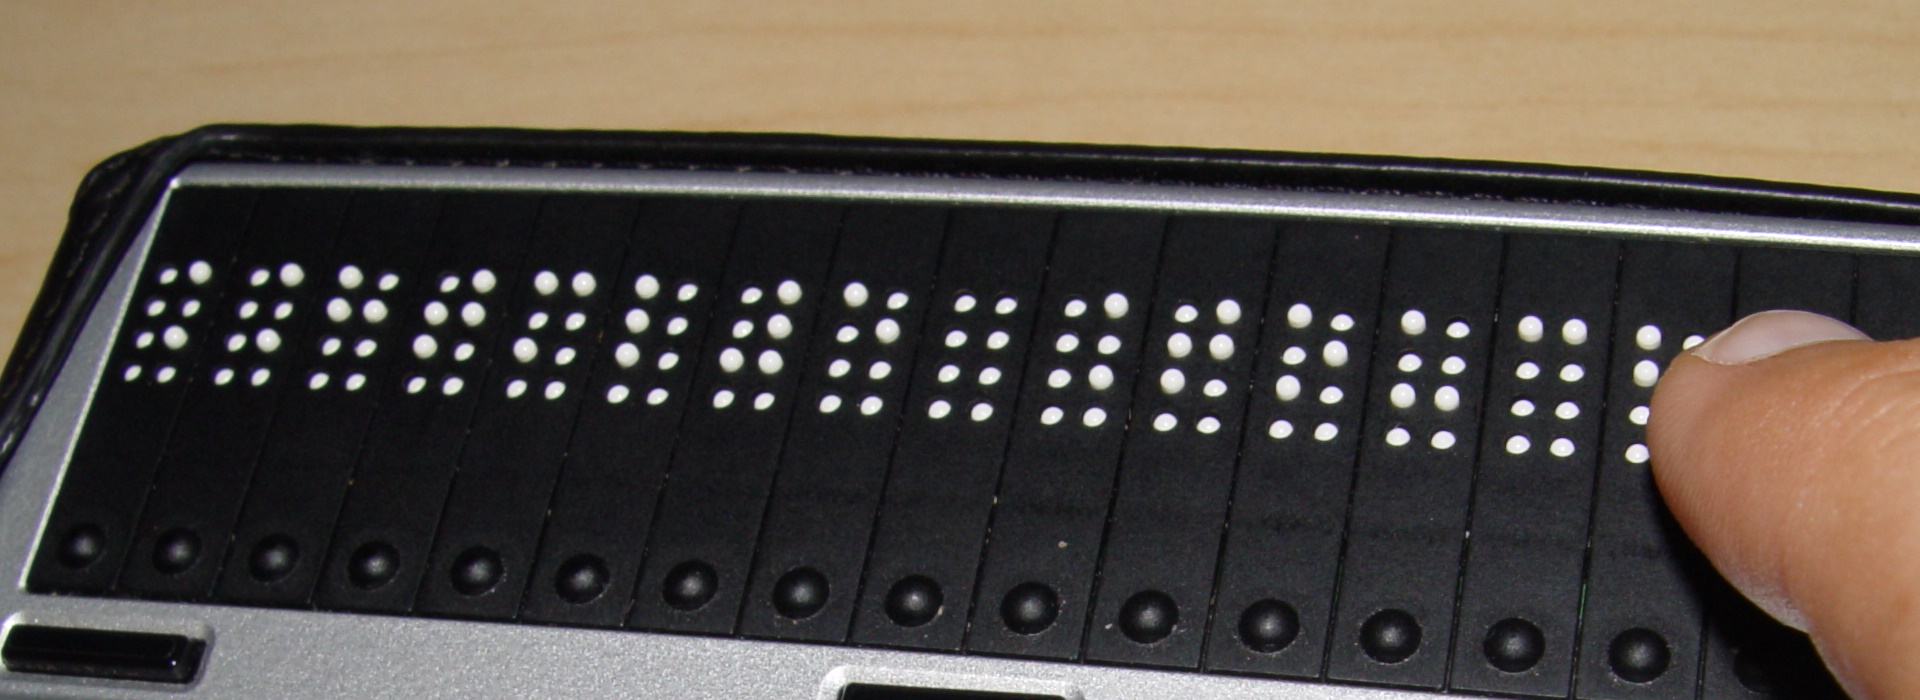 Foto dedo leyendo braille digital.